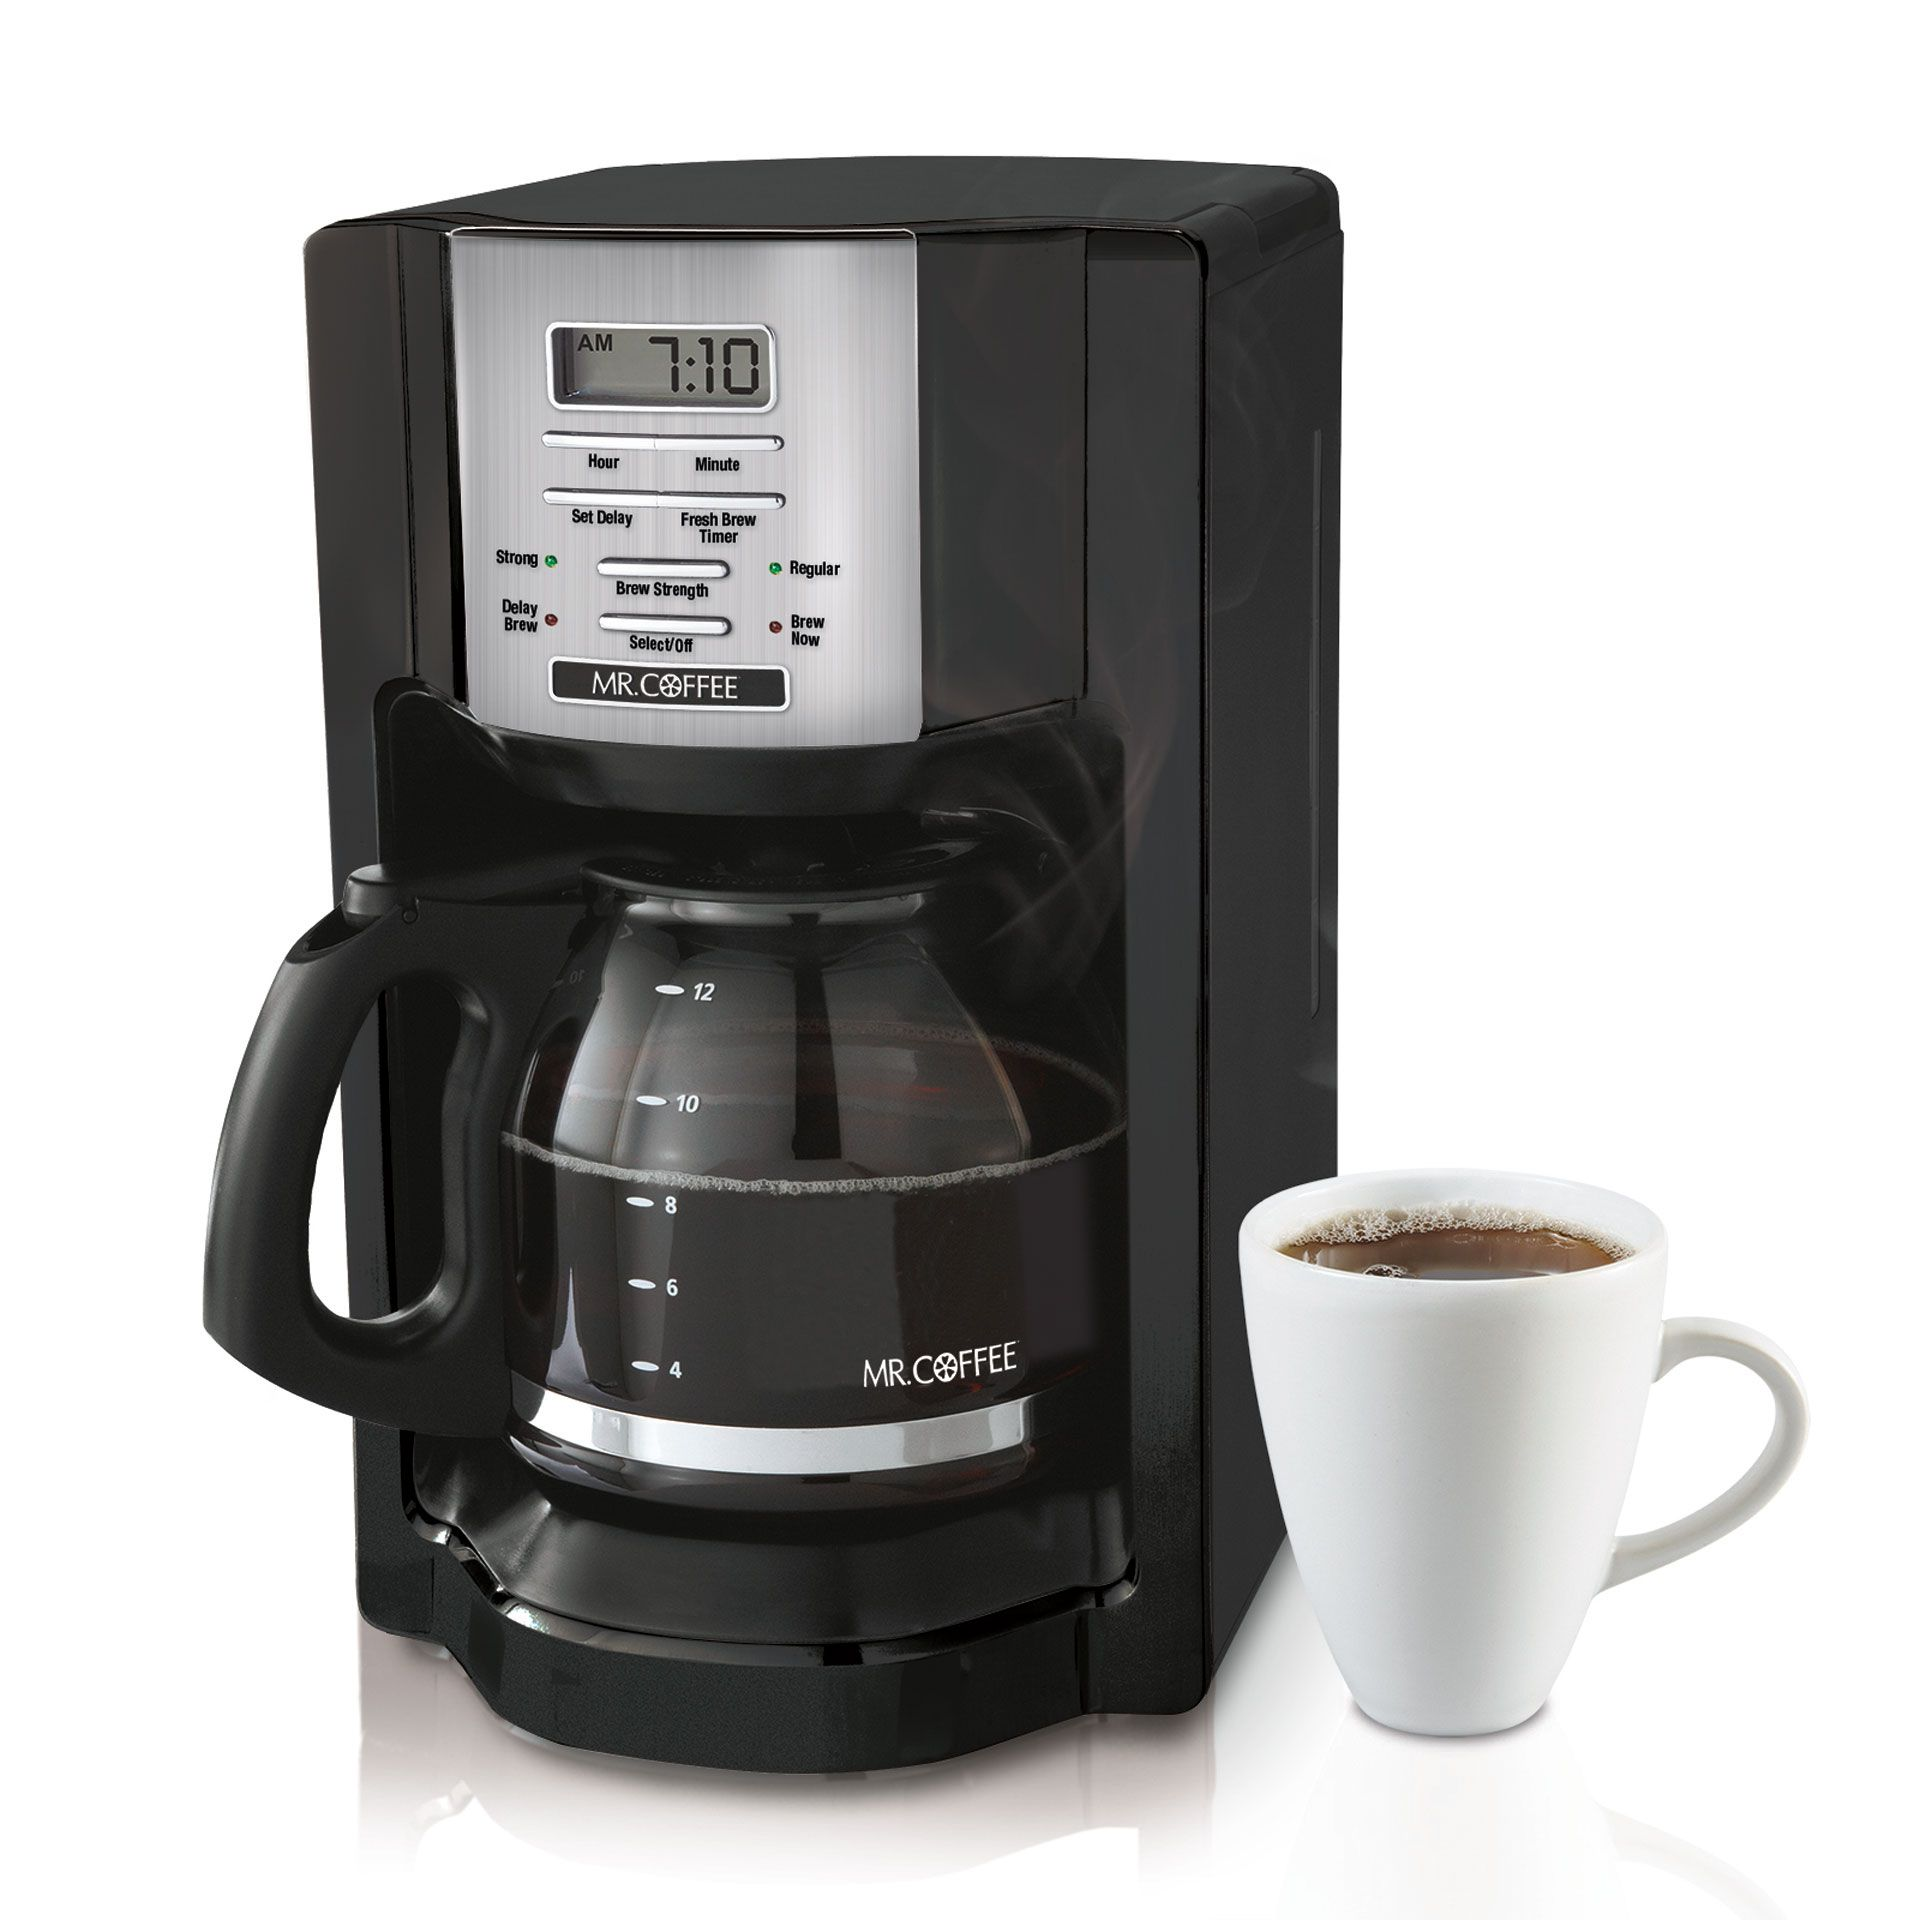 Lovable Which Under Cabinet Coffee Maker Is Good Oncoffeemakers Com Singapore Mr Coffee Under Cabinet Coffee Maker Coffee Drinker Under Cabinet Coffee Maker Under Cabinet Coffee Maker Stainless Steel houzz-02 Under Cabinet Coffee Maker